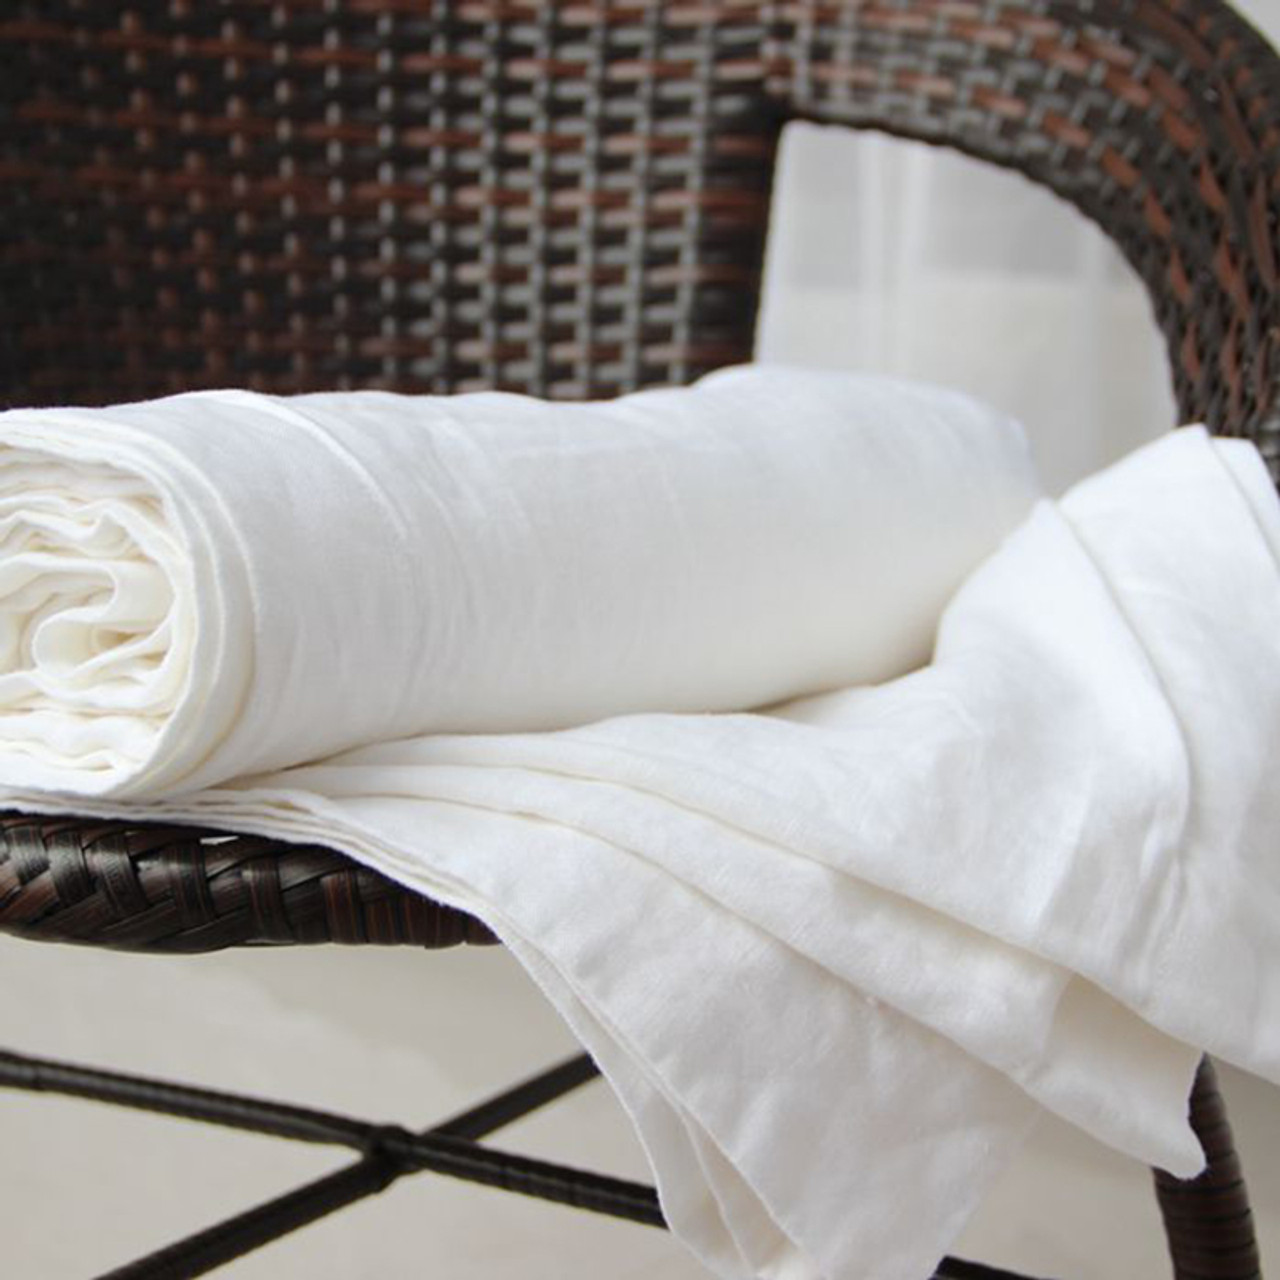 Natural Linen Towels Face Towels Bath Towels Handmade By